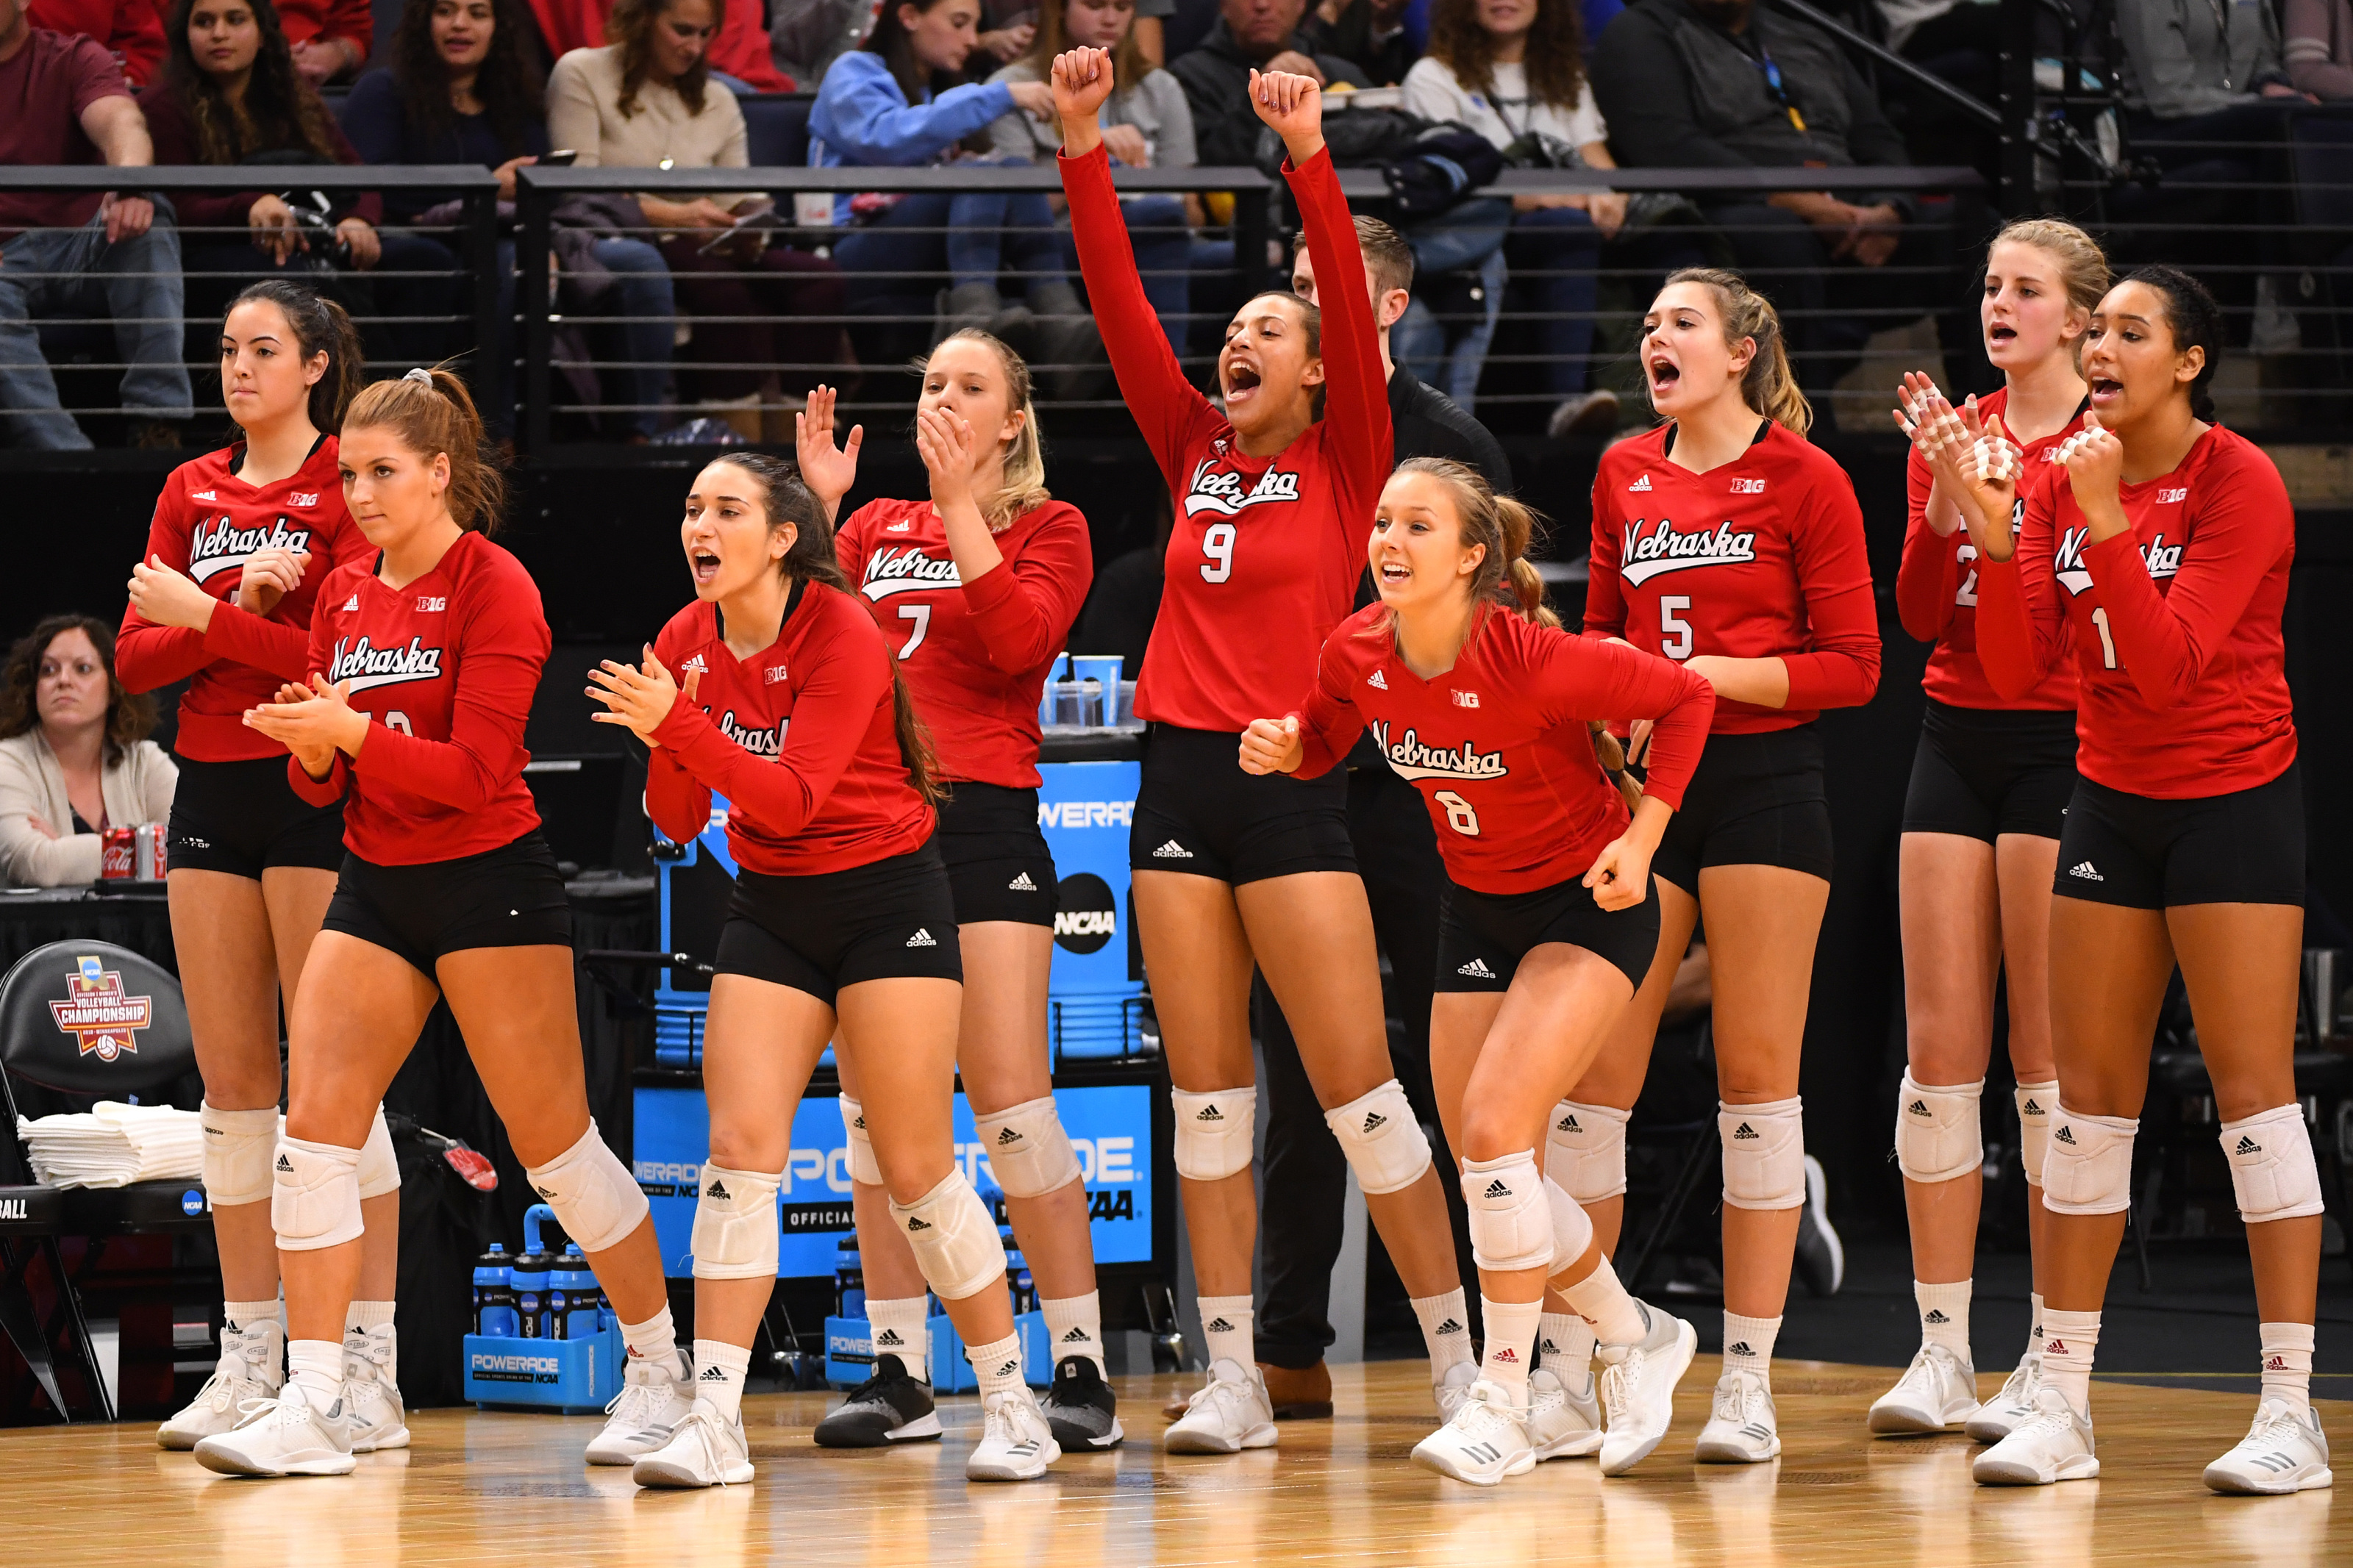 Nebraska Volleyball Same Starting Lineup Gives Huskers Advantage